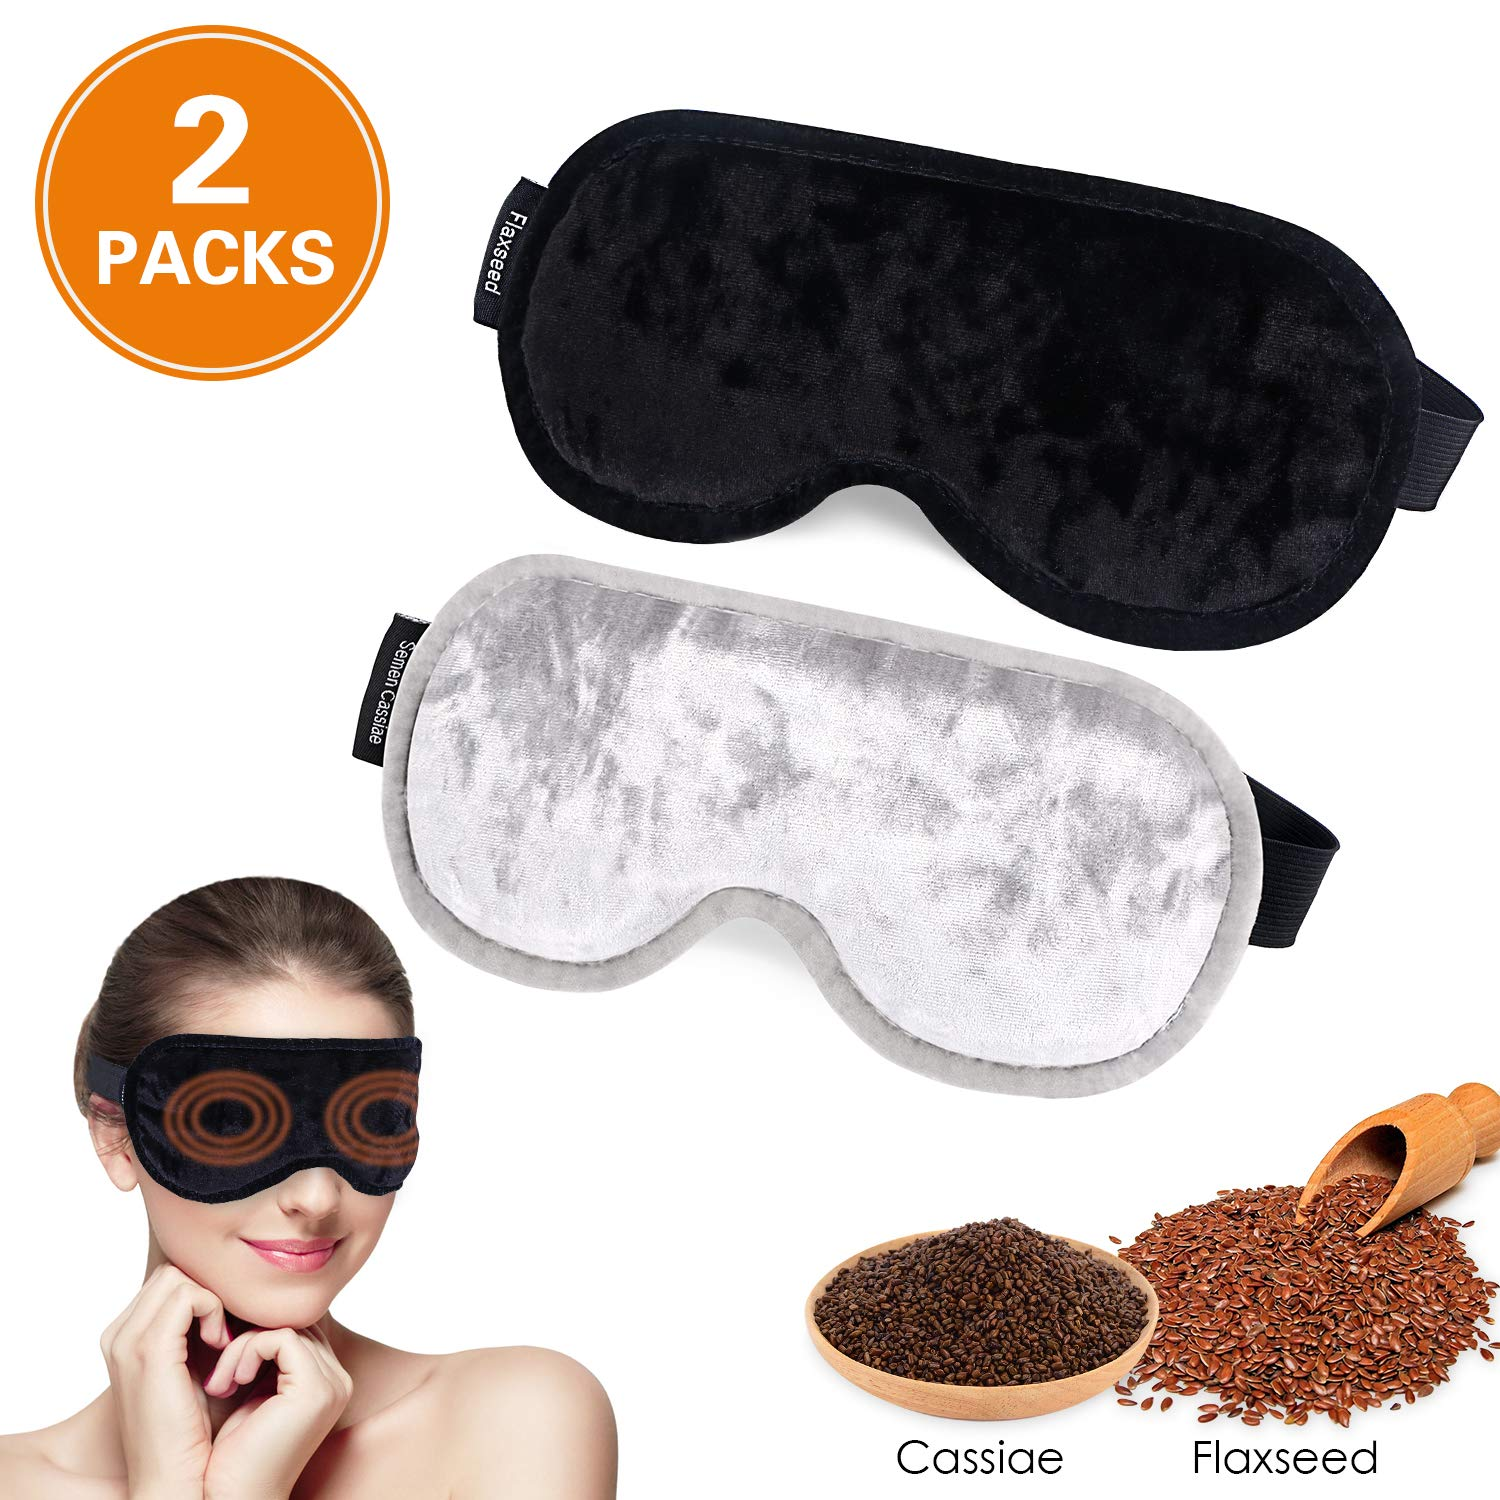 Eye Mask for Sleeping,WU-MINGLU Moist Heat Eye Compress&Microwave Hot Eye Mask for Dry Eye,Adjustable Soft Contoured Eyeshade Blindfold for Women,Men,Travel,Shift Work & Meditation (Black & Silve)